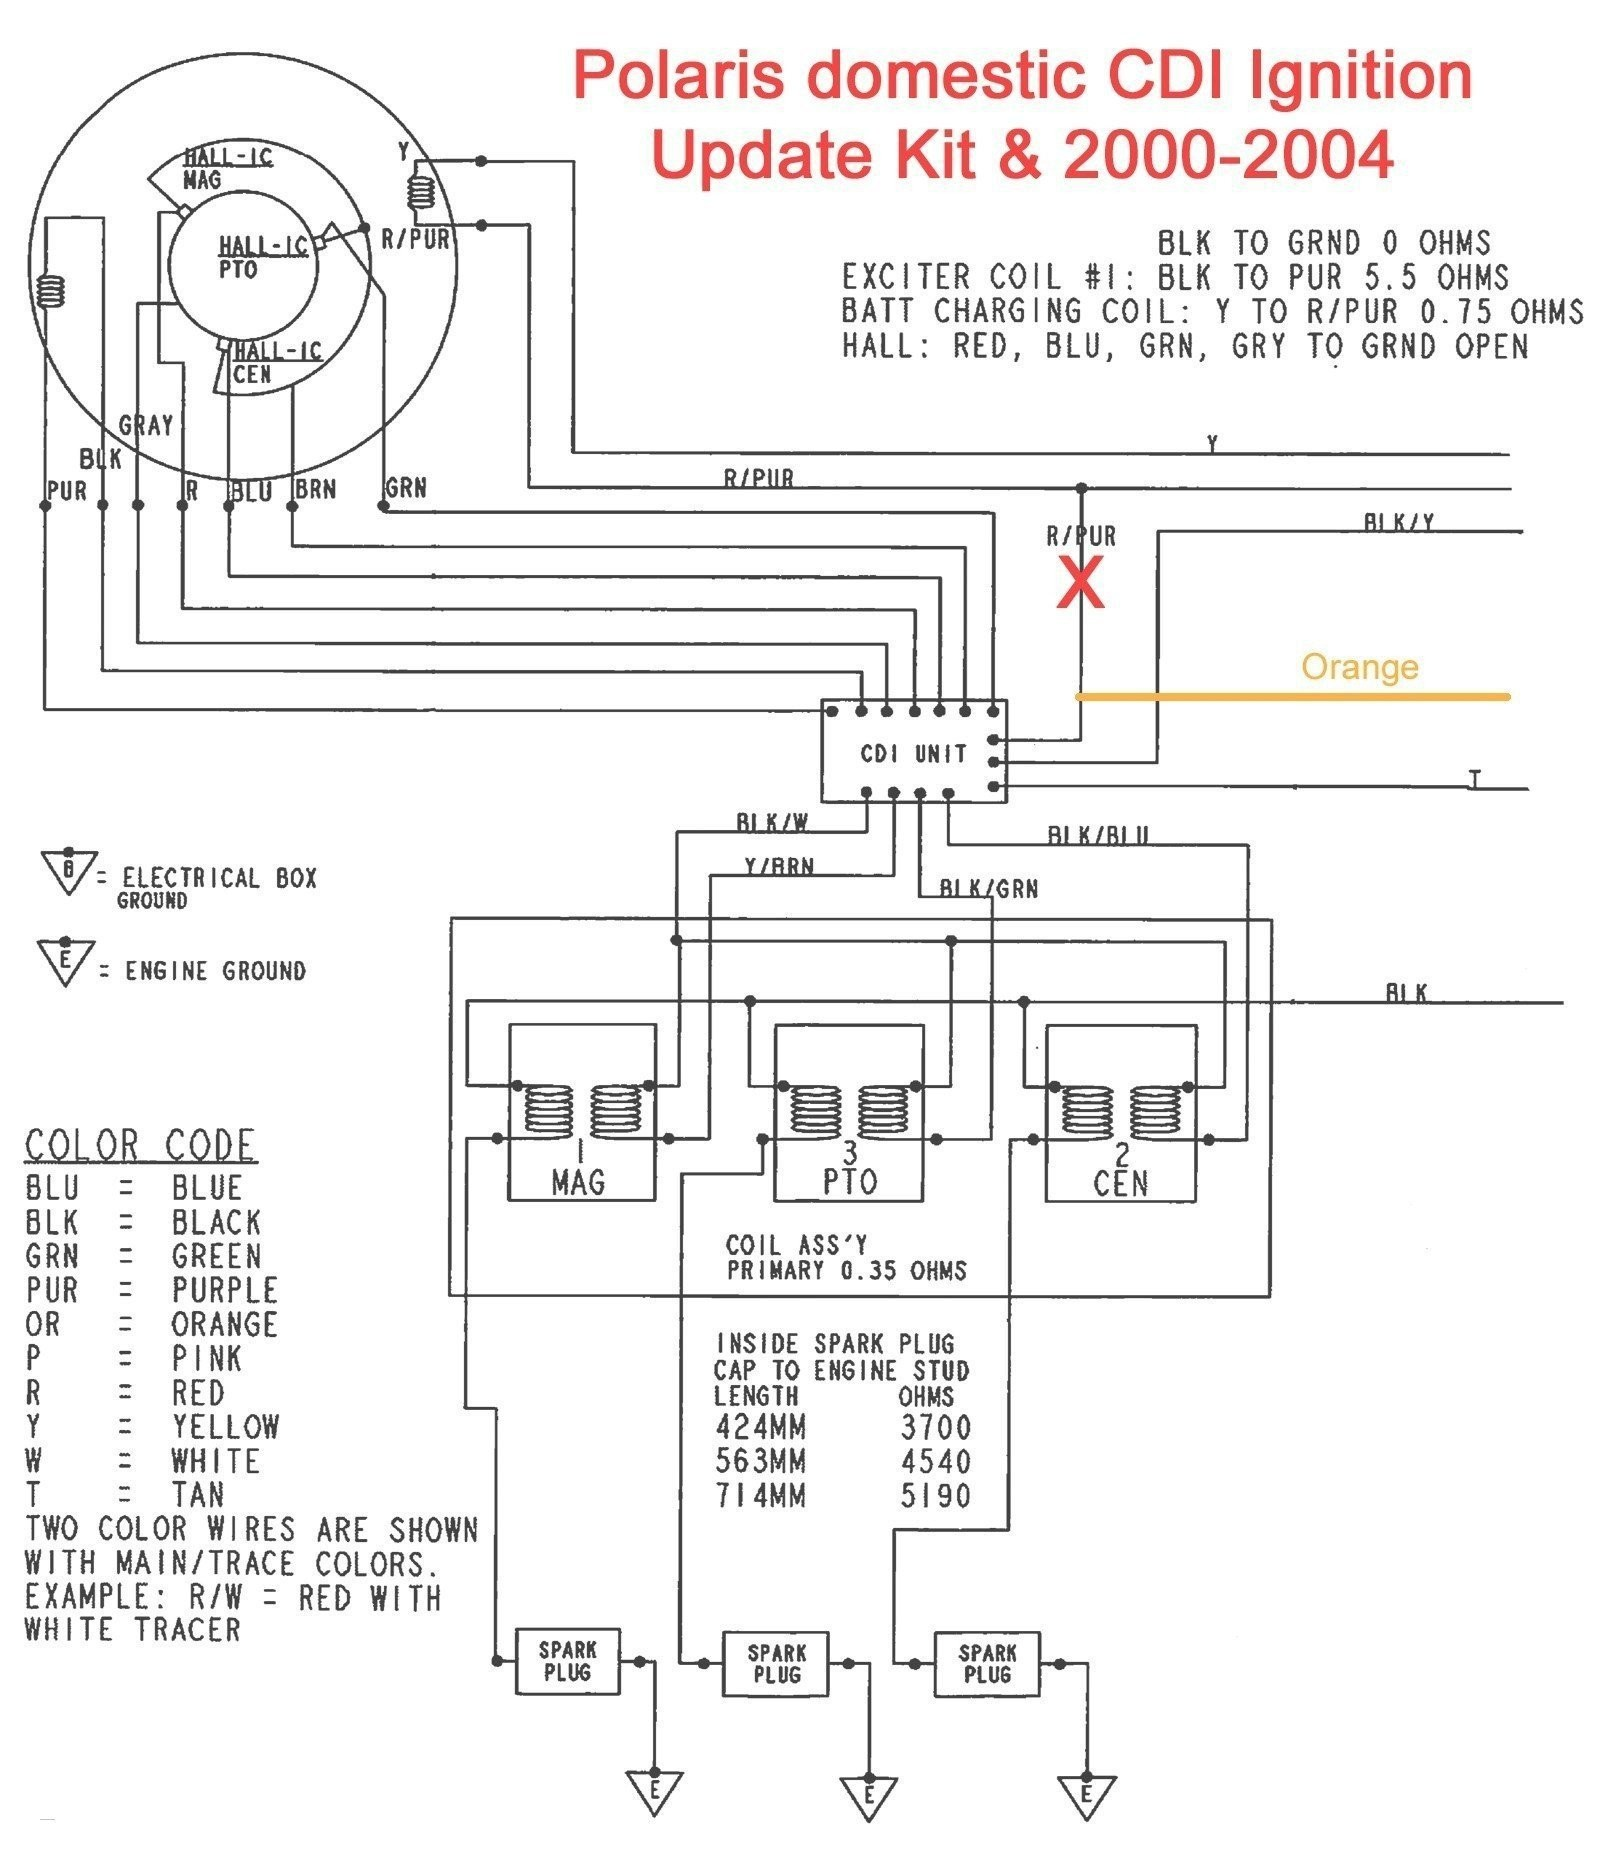 2006 Polaris Predator 90 Wiring Diagram